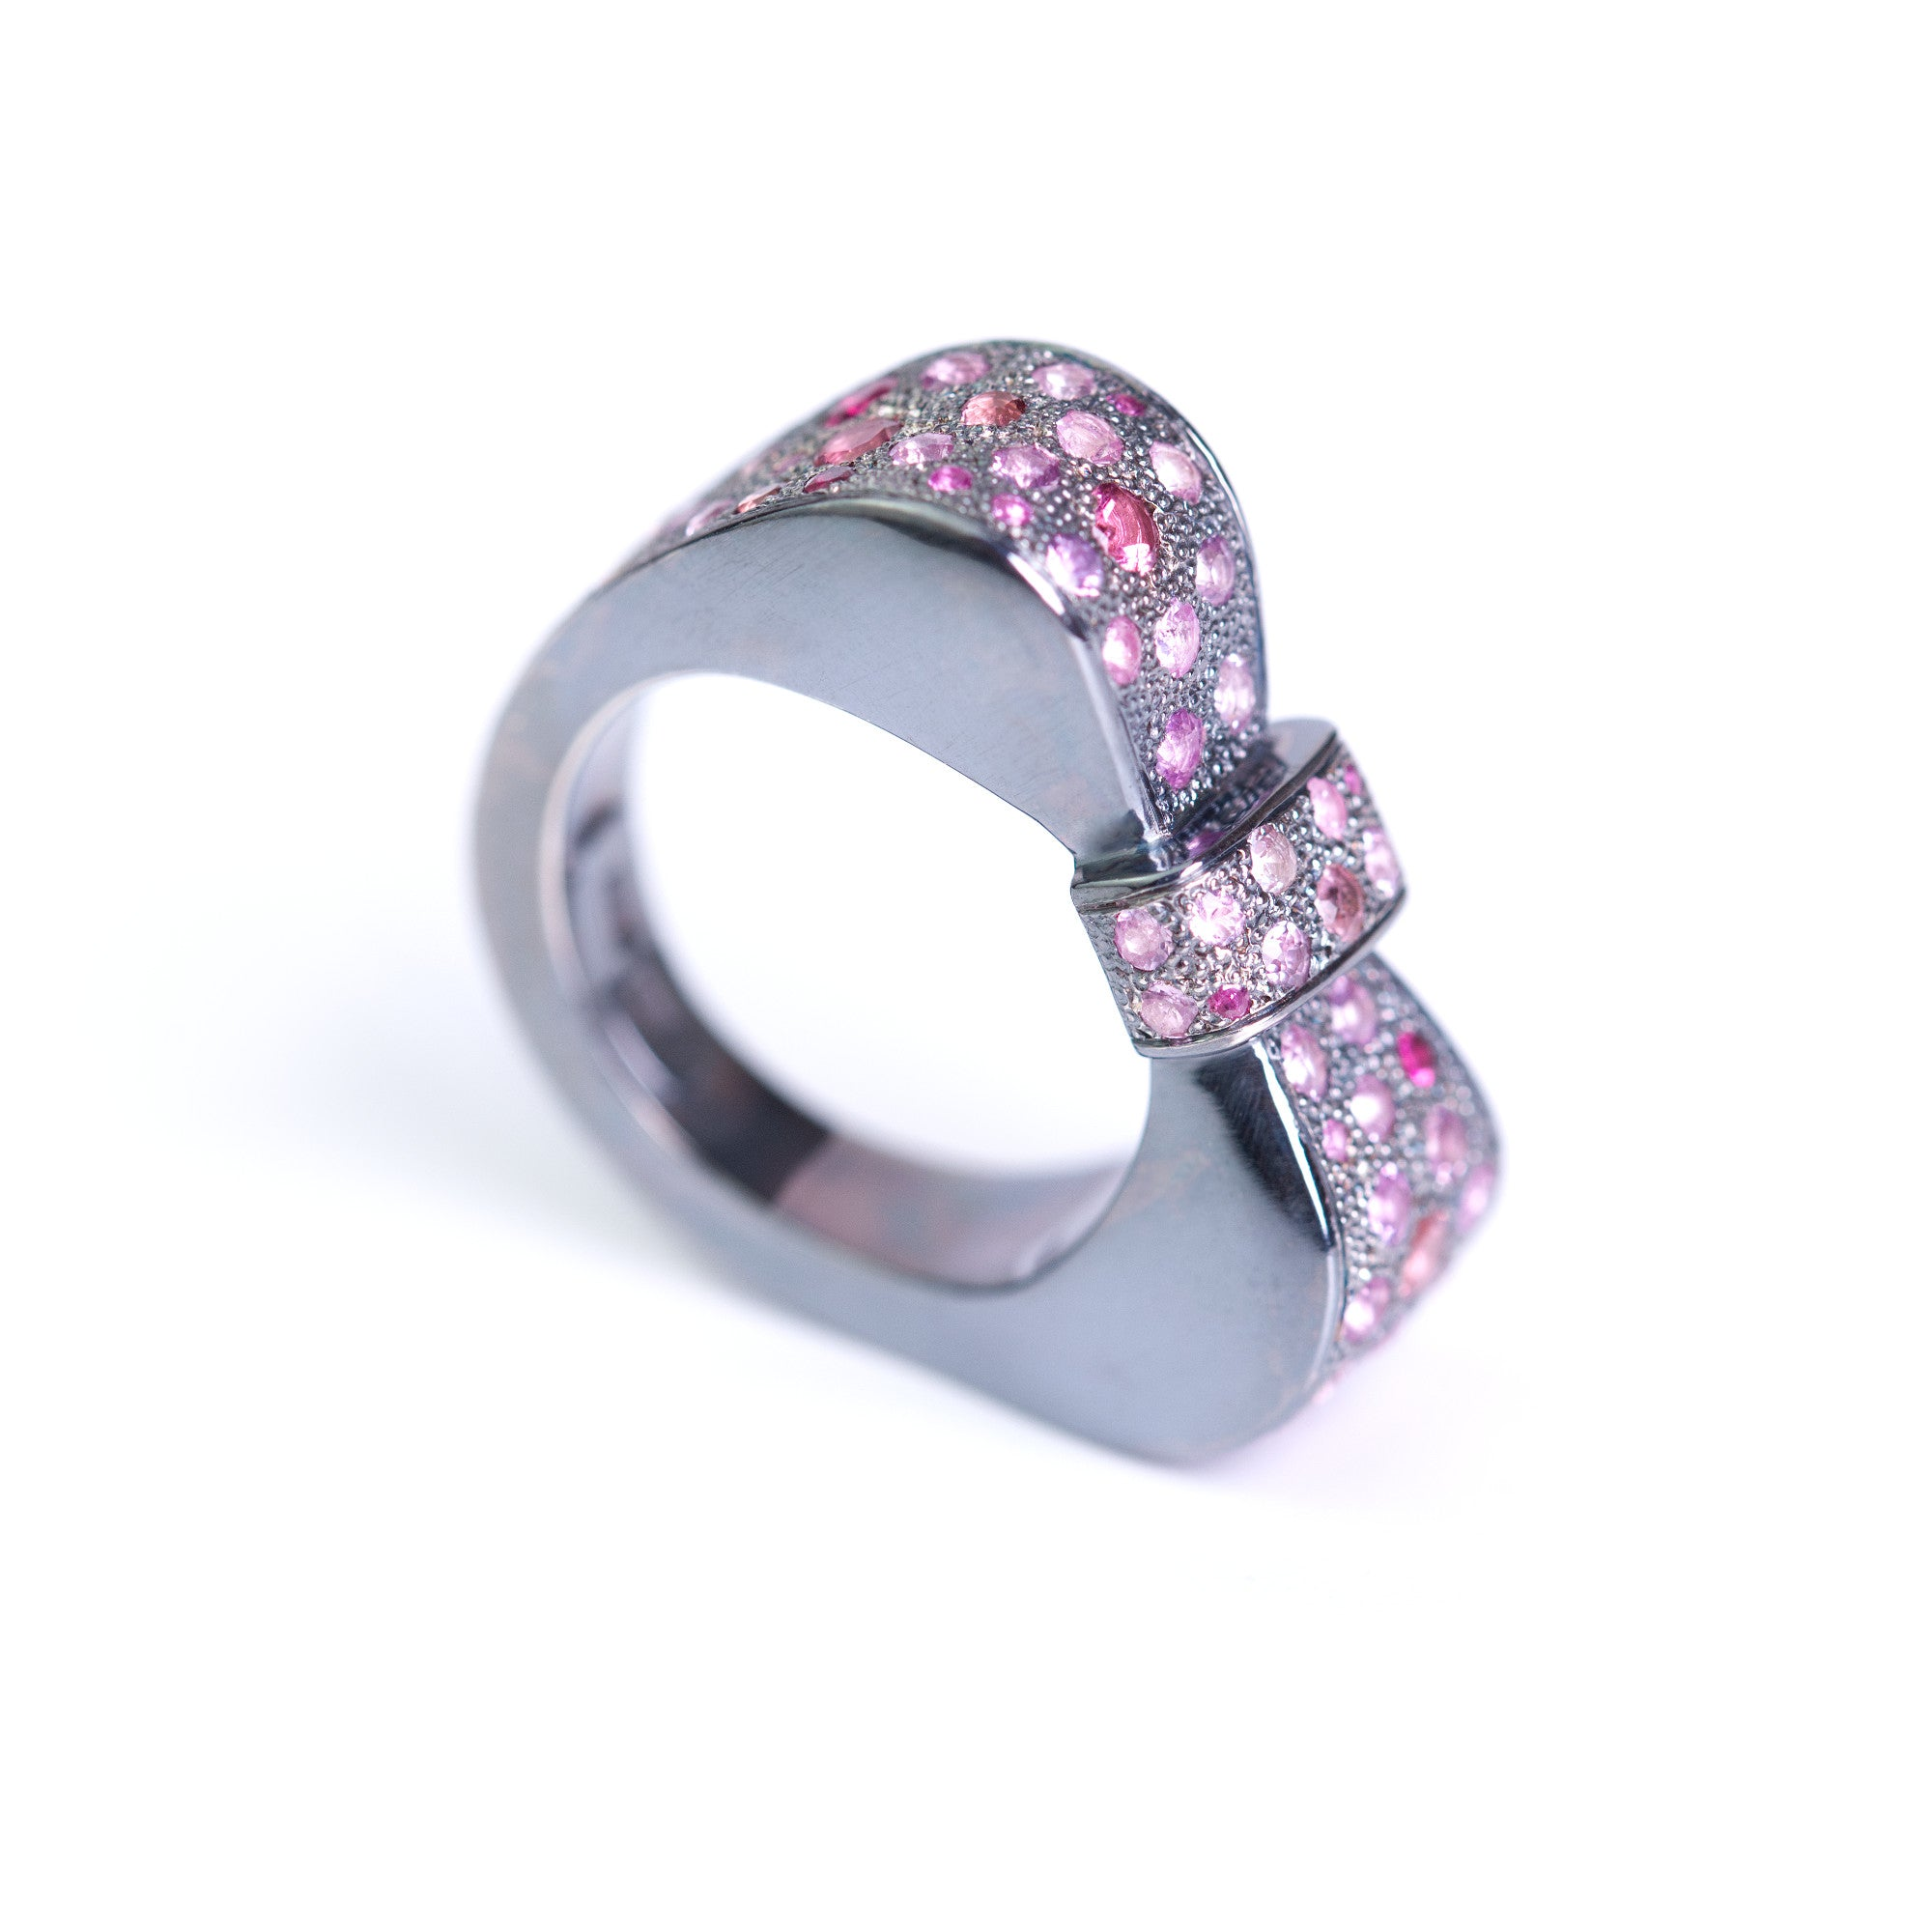 Art Deco Bow Ring with pink sapphires made by Ewa Z. Sleziona Jewellery